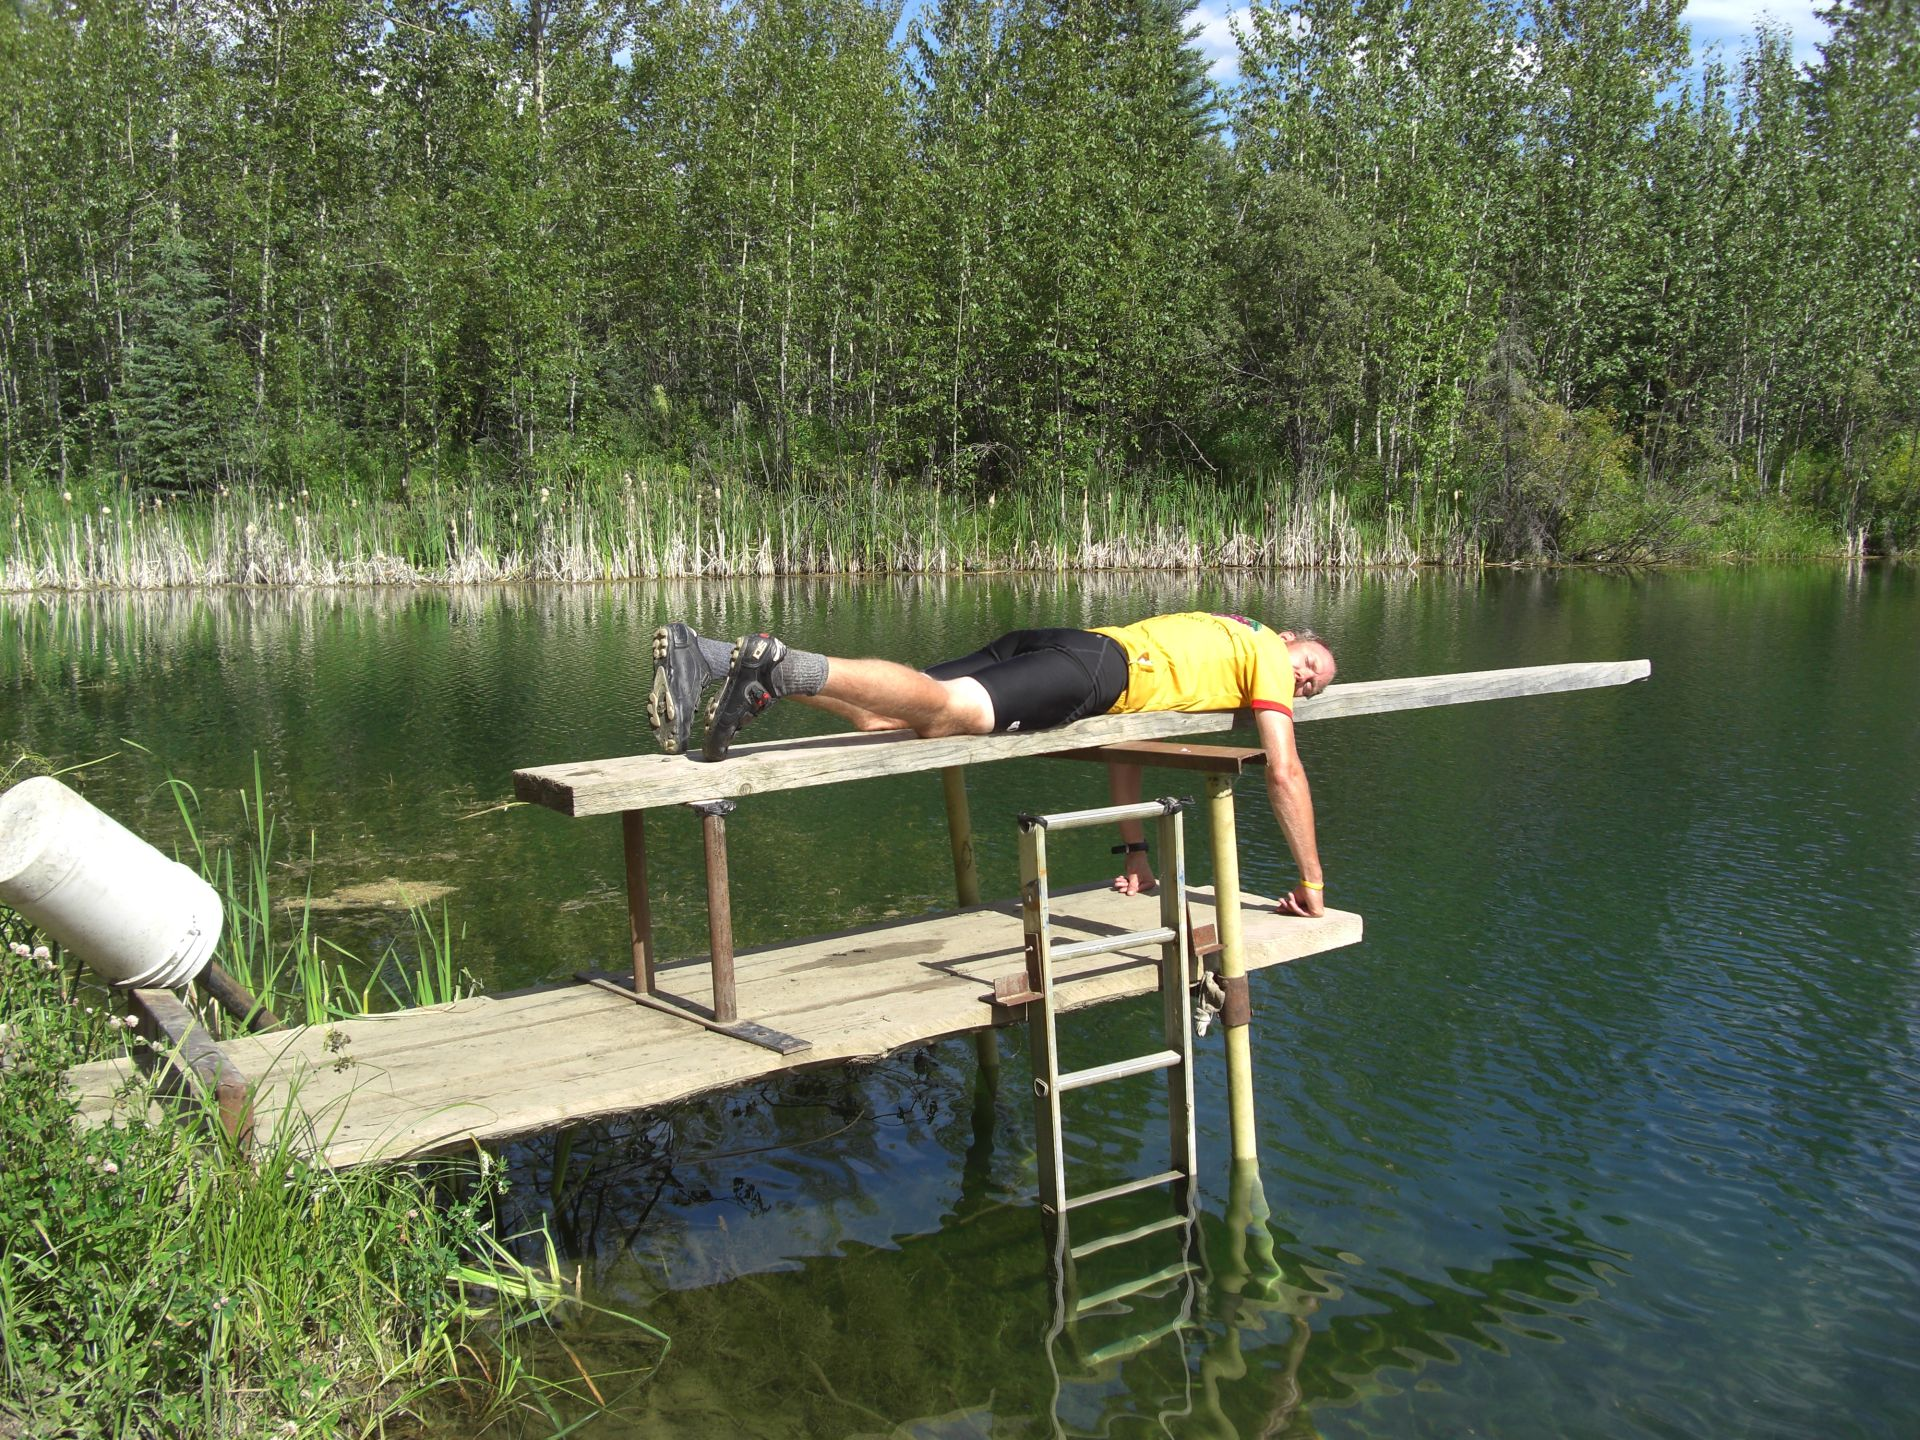 Nr Fort St John, YT, Canada - You get kinda good at sleeping anywhere... (pic courtesy of the Budwegs)